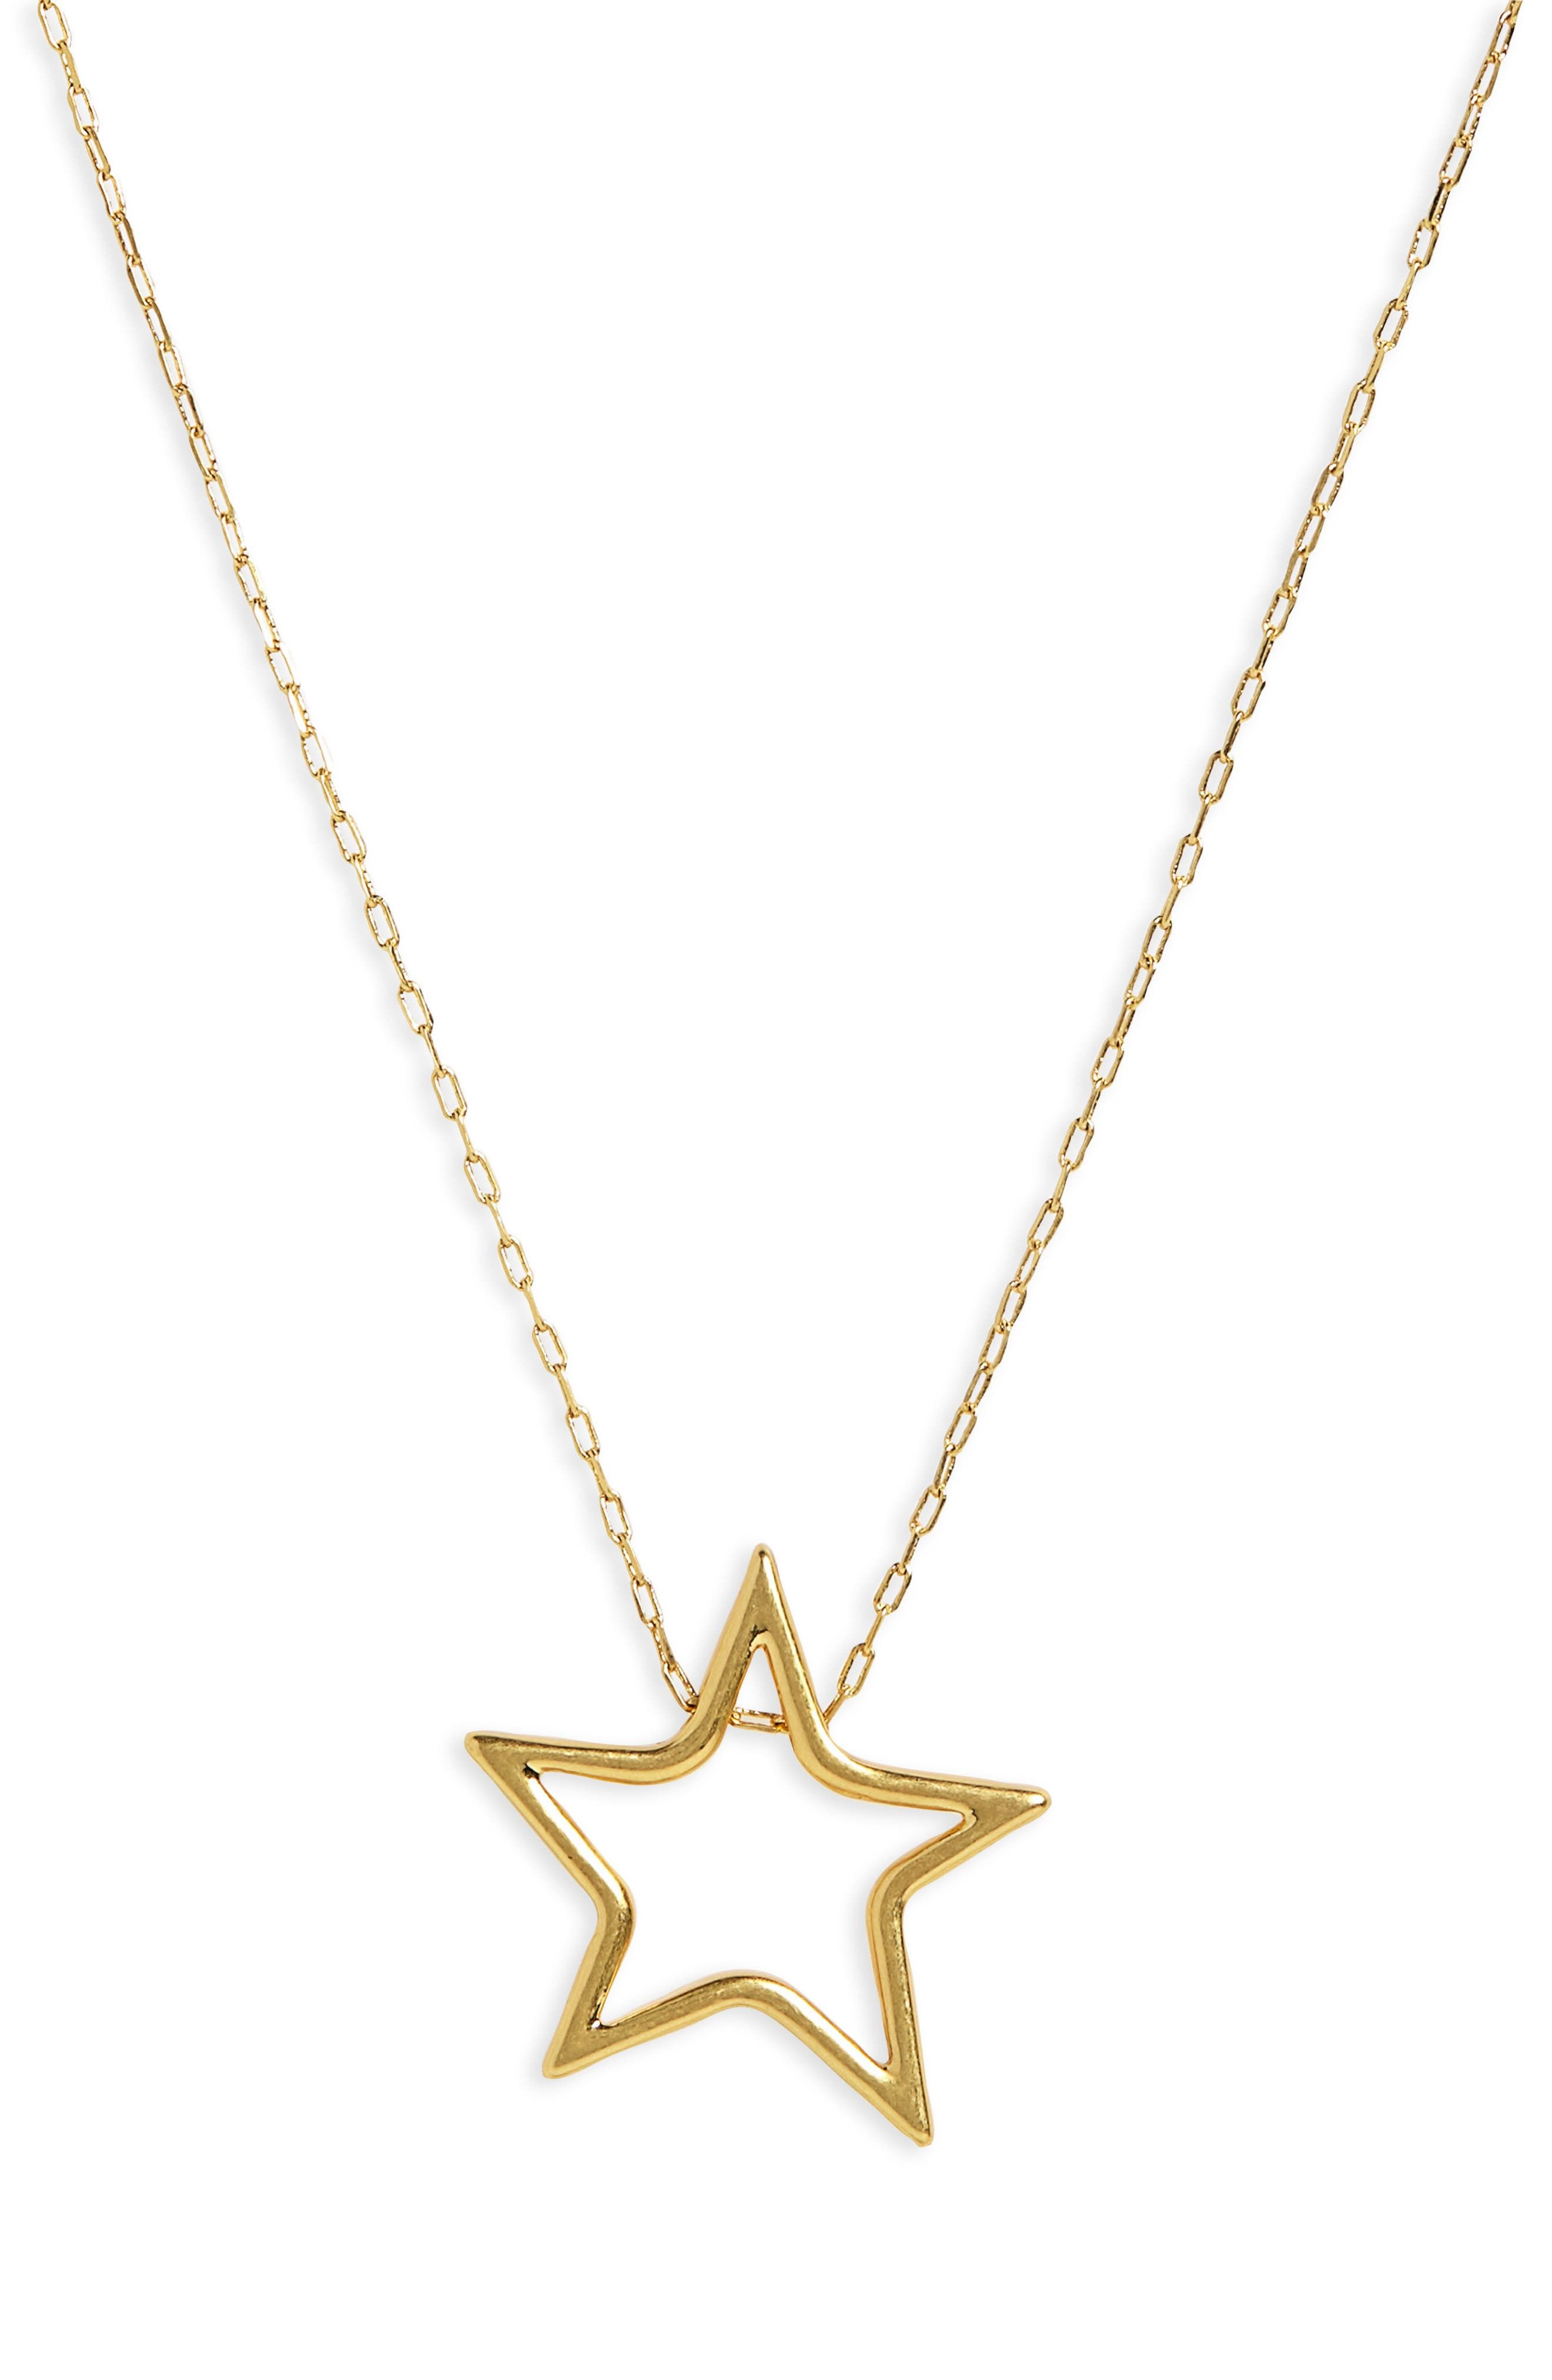 MADEWELL,                             Night Star Necklace,                             Alternate thumbnail 2, color,                             VINTAGE GOLD